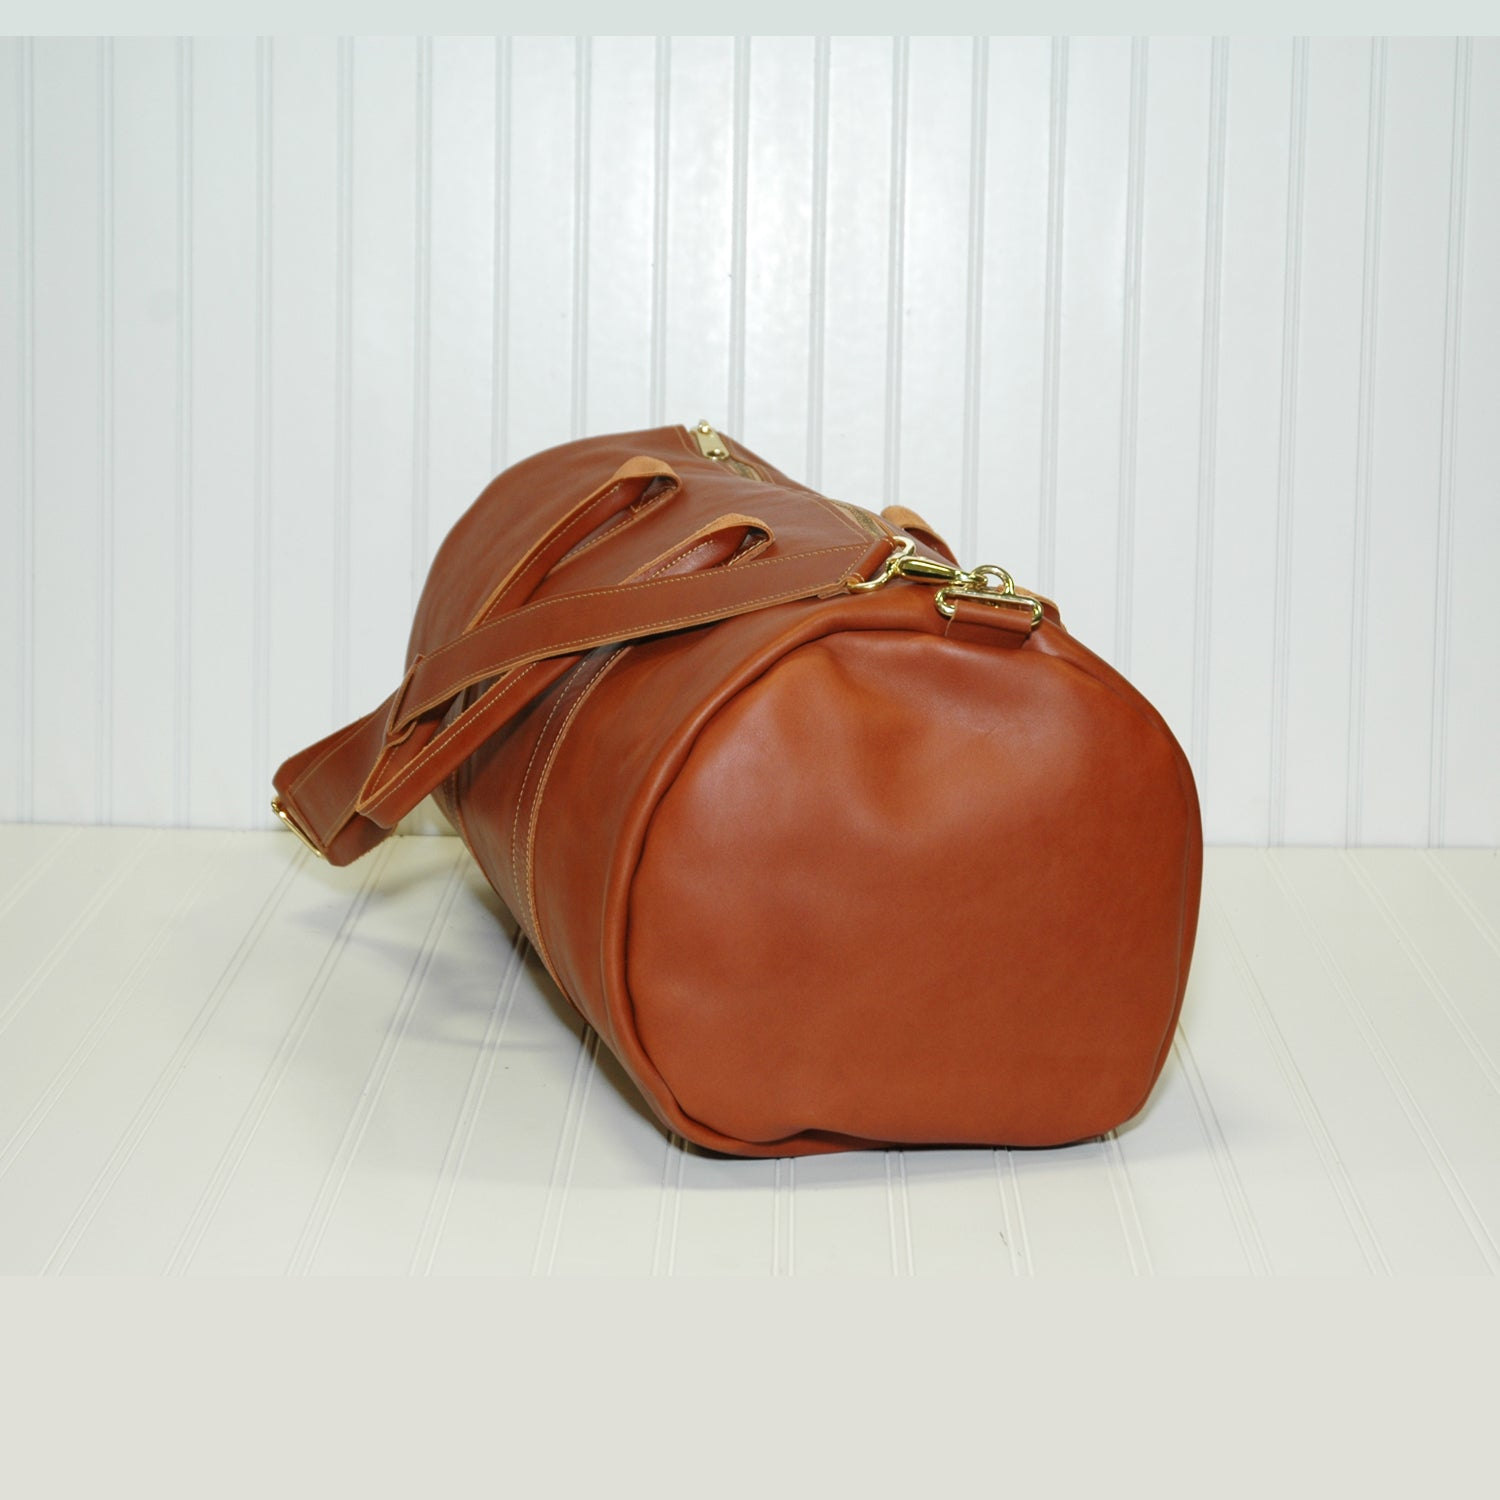 The Weekender Duffle (In Nappa Leather)